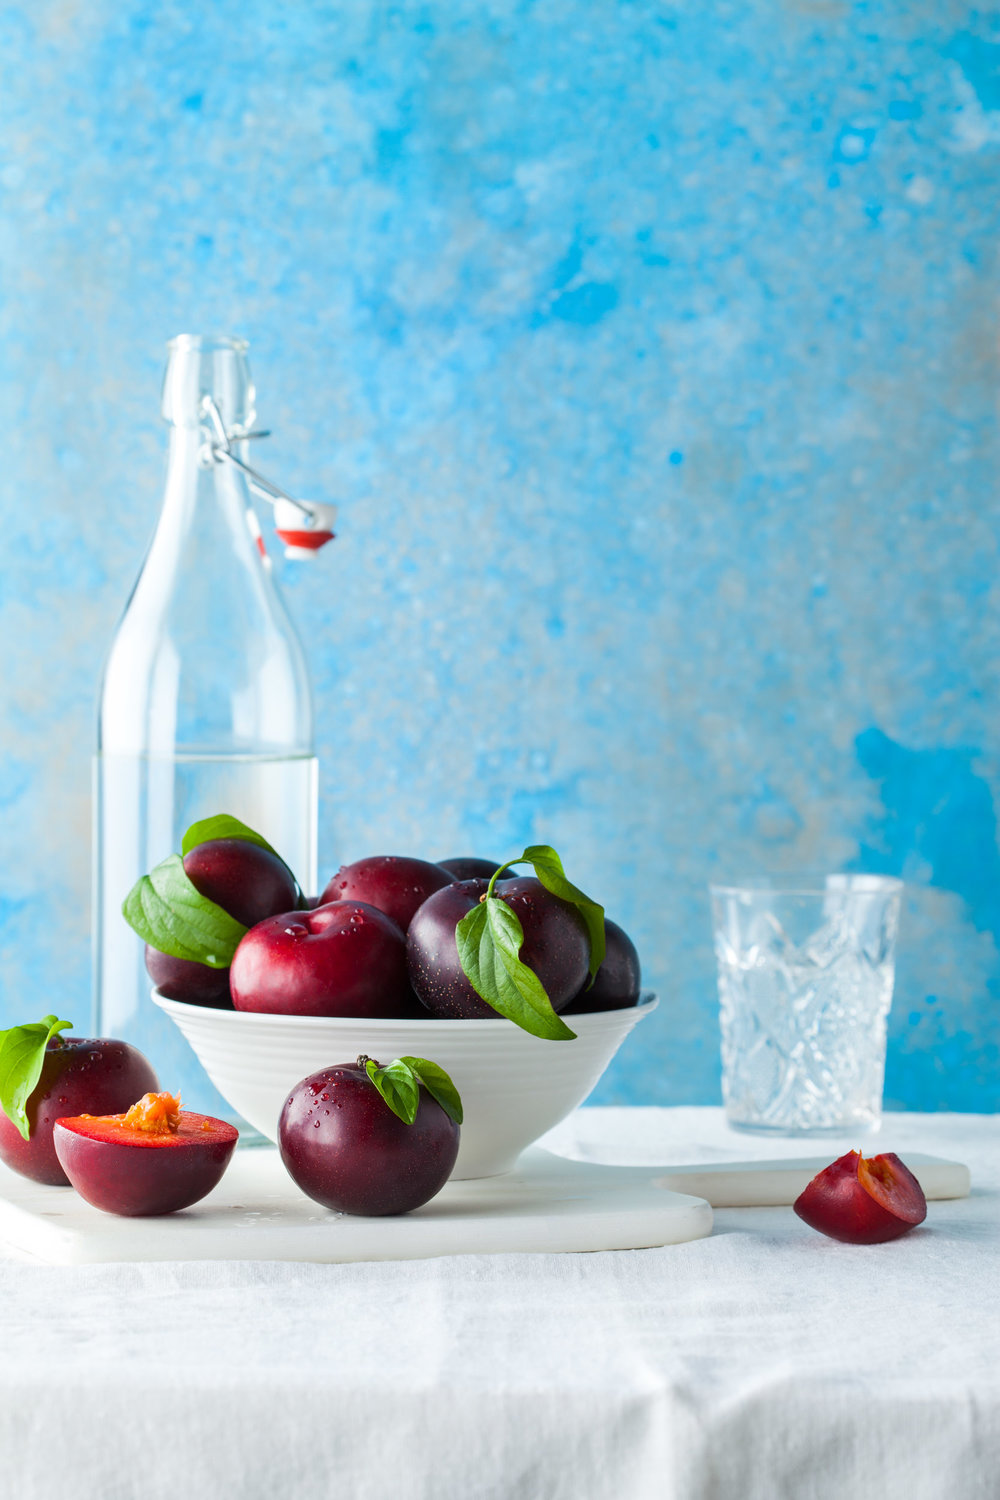 food-plums-lesliegrow.jpg